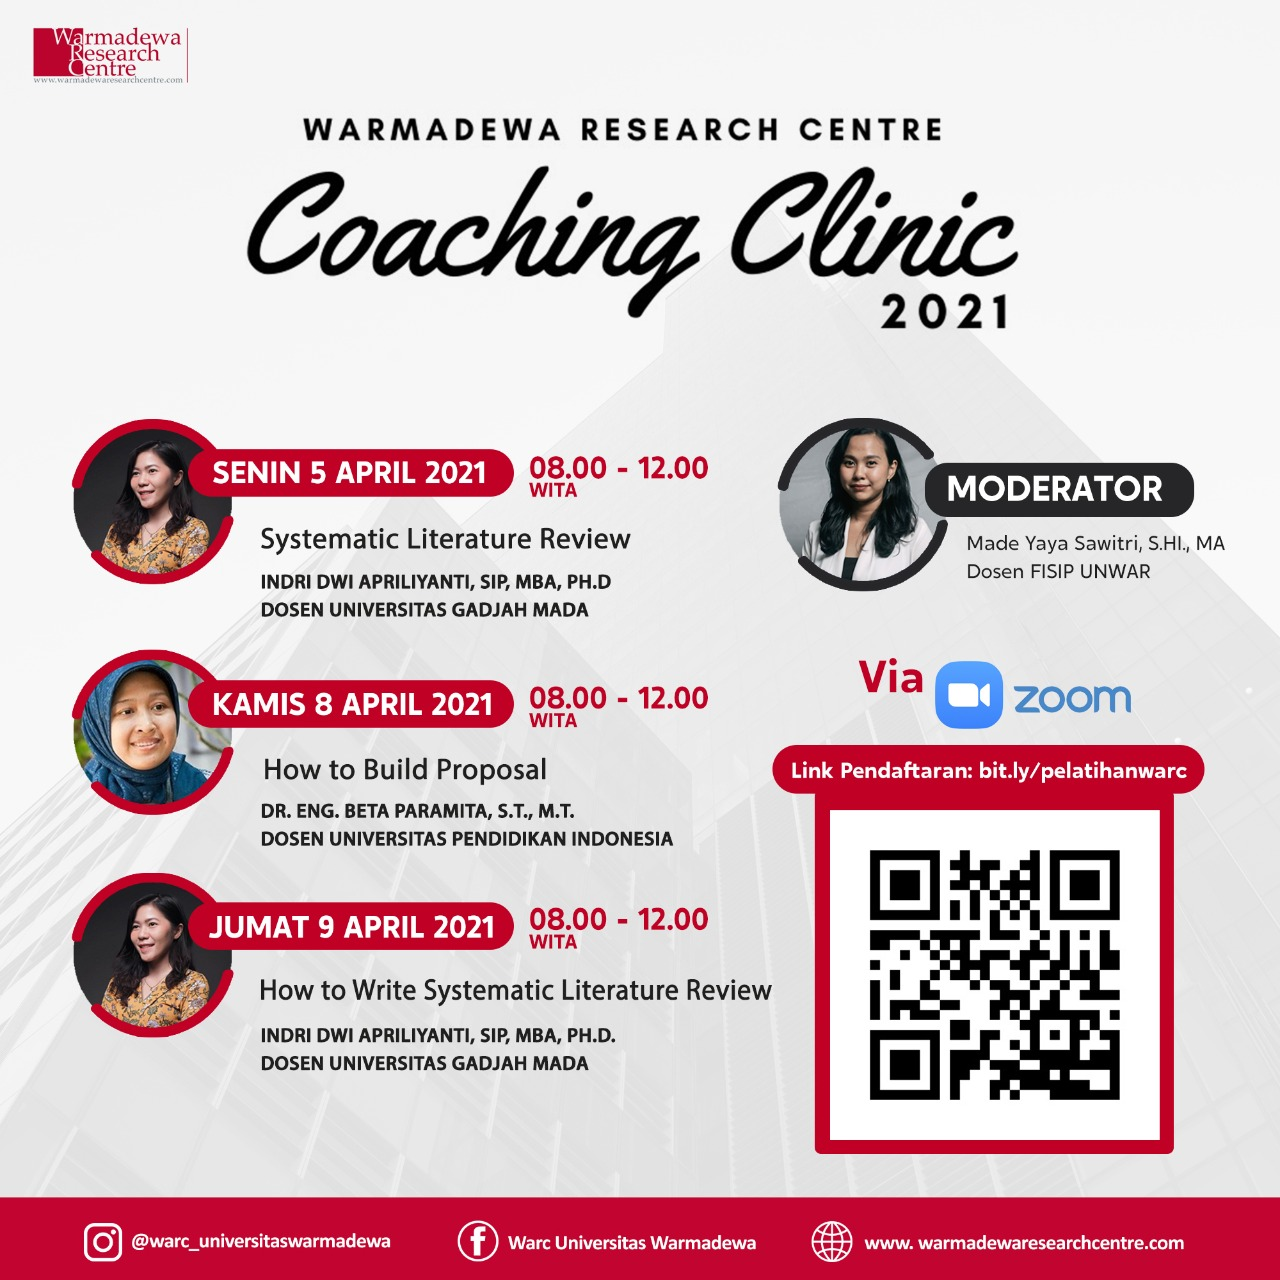 Seri Coaching Clinic Warmadewa Research Centre